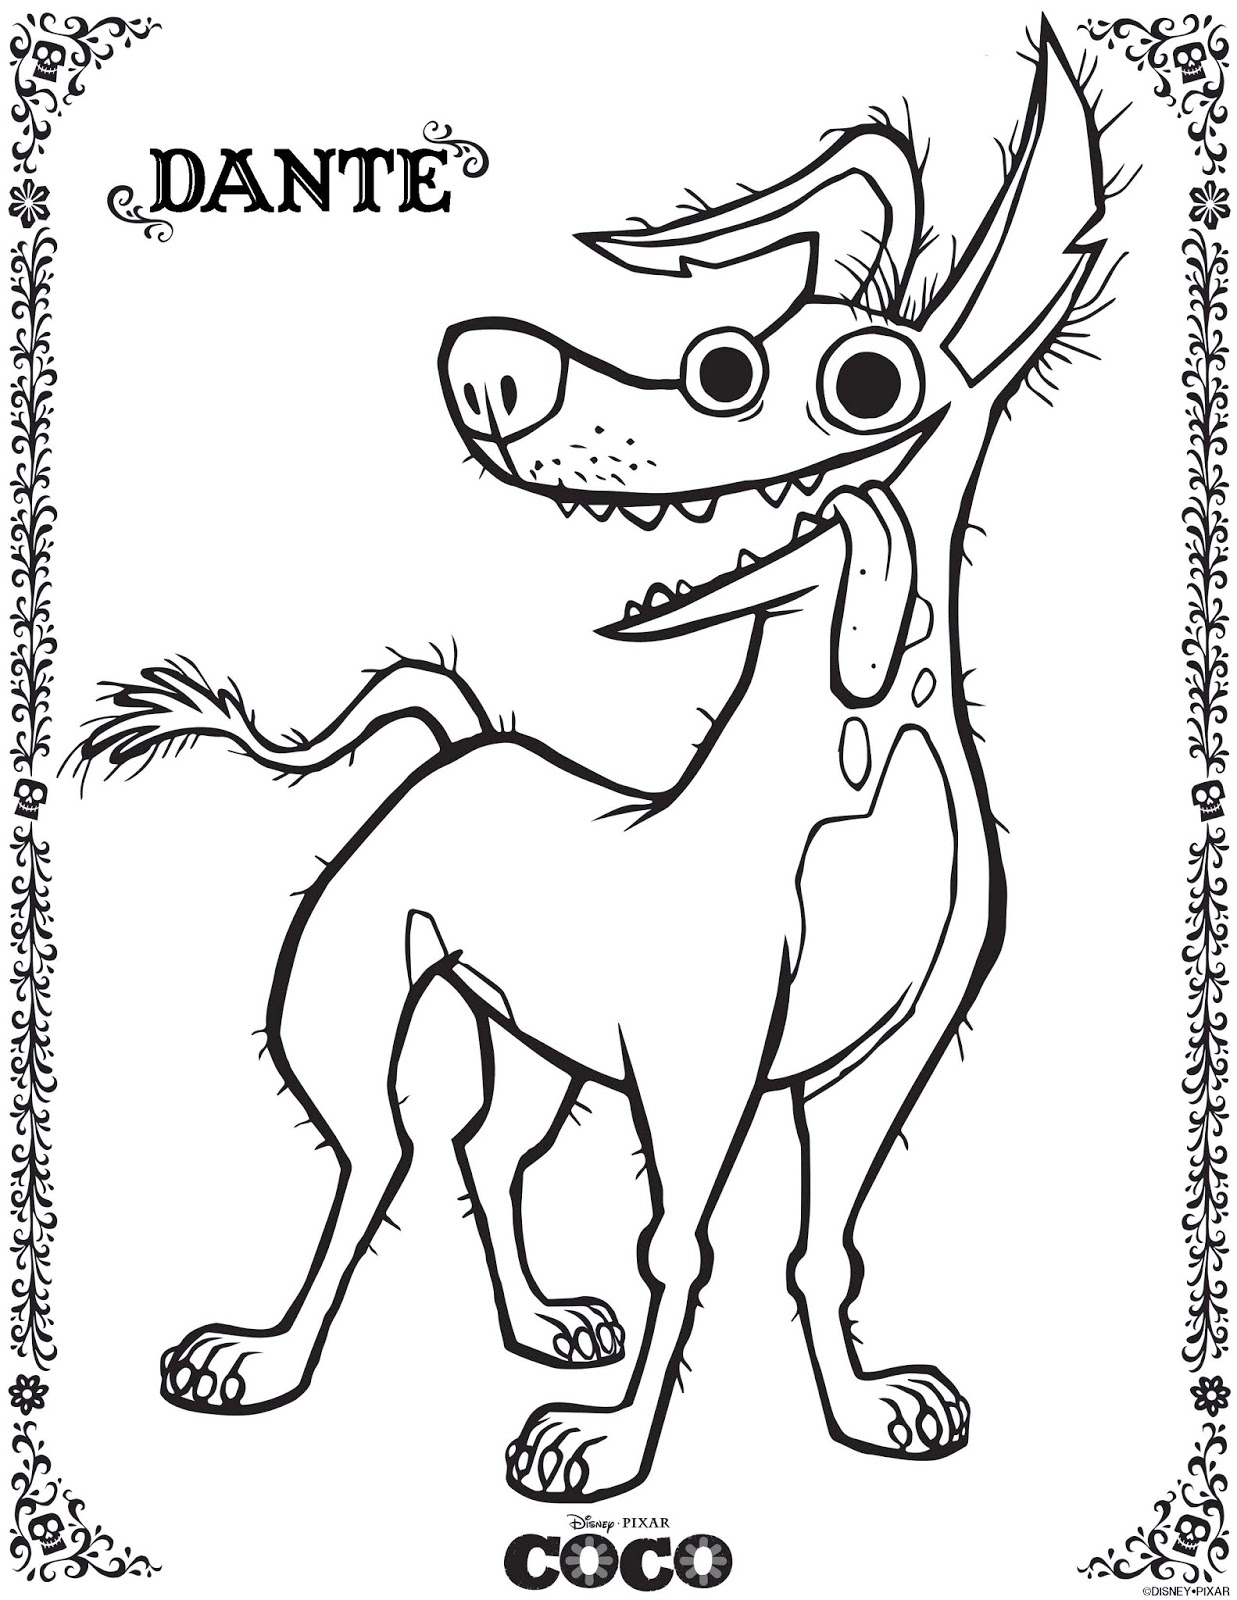 Coco Coloring Pages (August 2018 Edition) - Miguel coloring pages